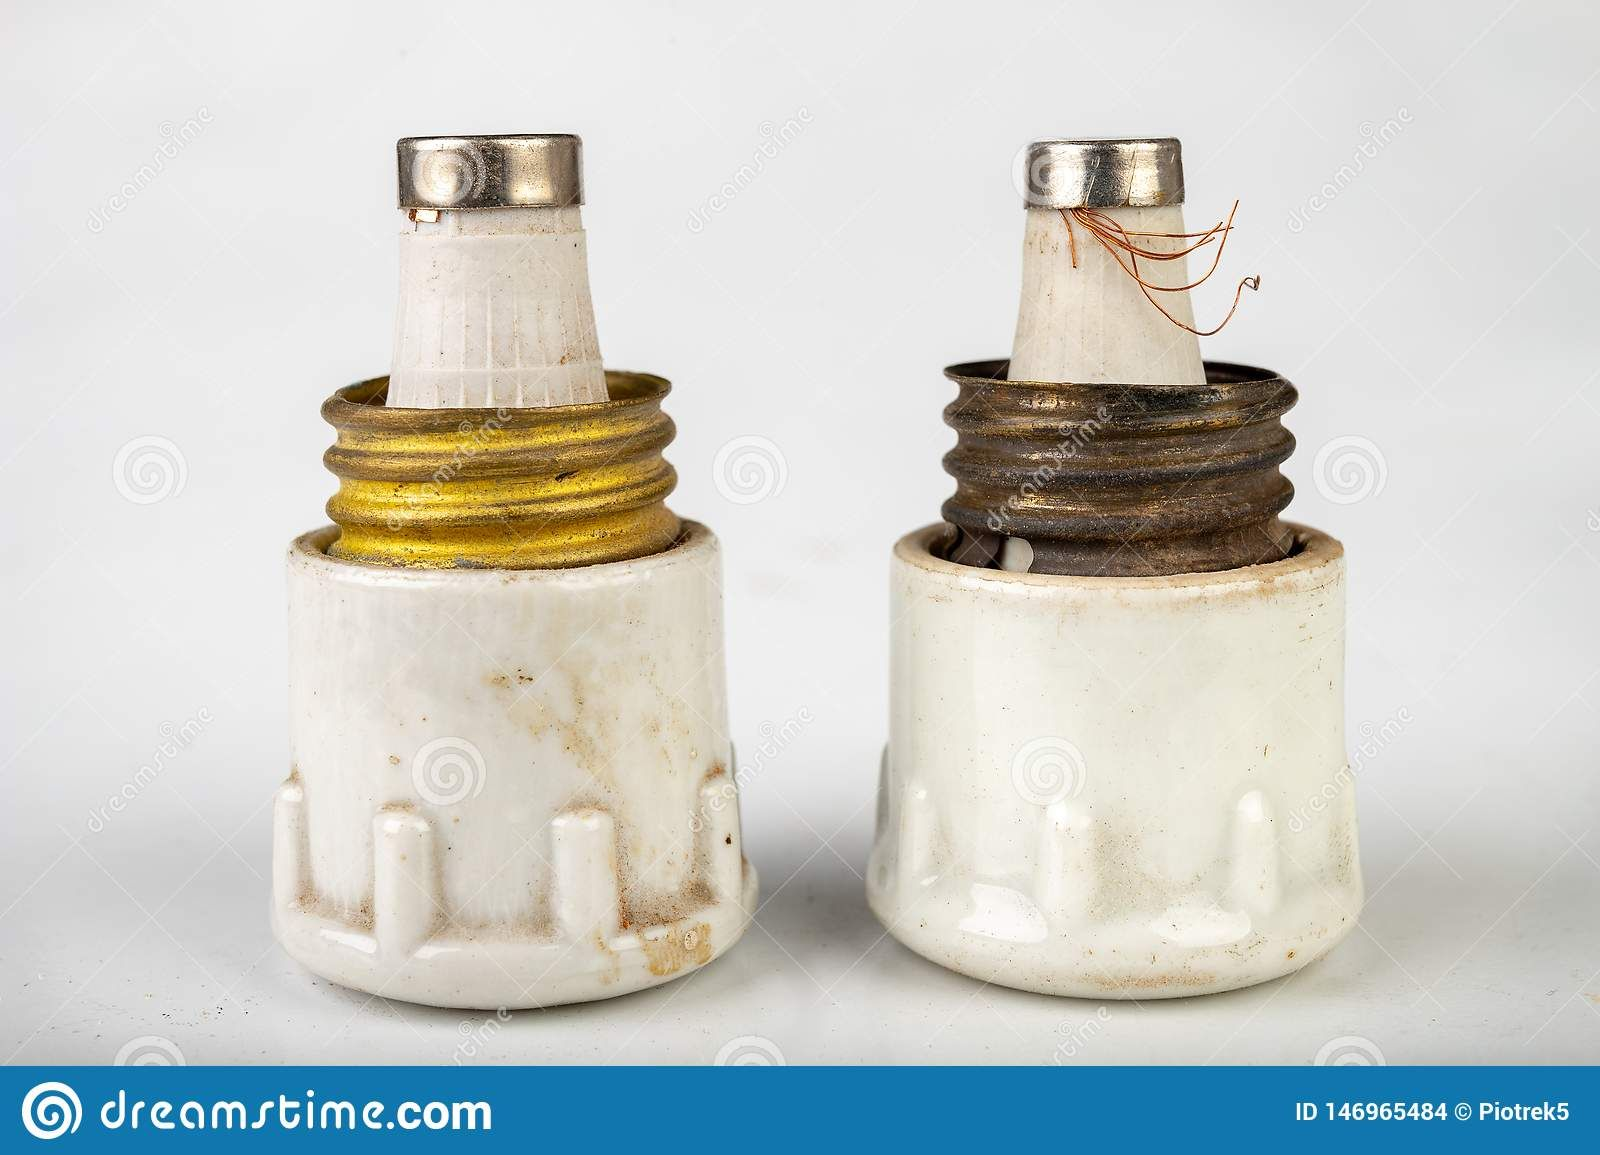 Old Ceramic Electric Fuse Blown And Badly Repaired Security For Energy Photo About Ceramic Background Bottle Energy Fuse Safe Ceramics Fuses Electricity